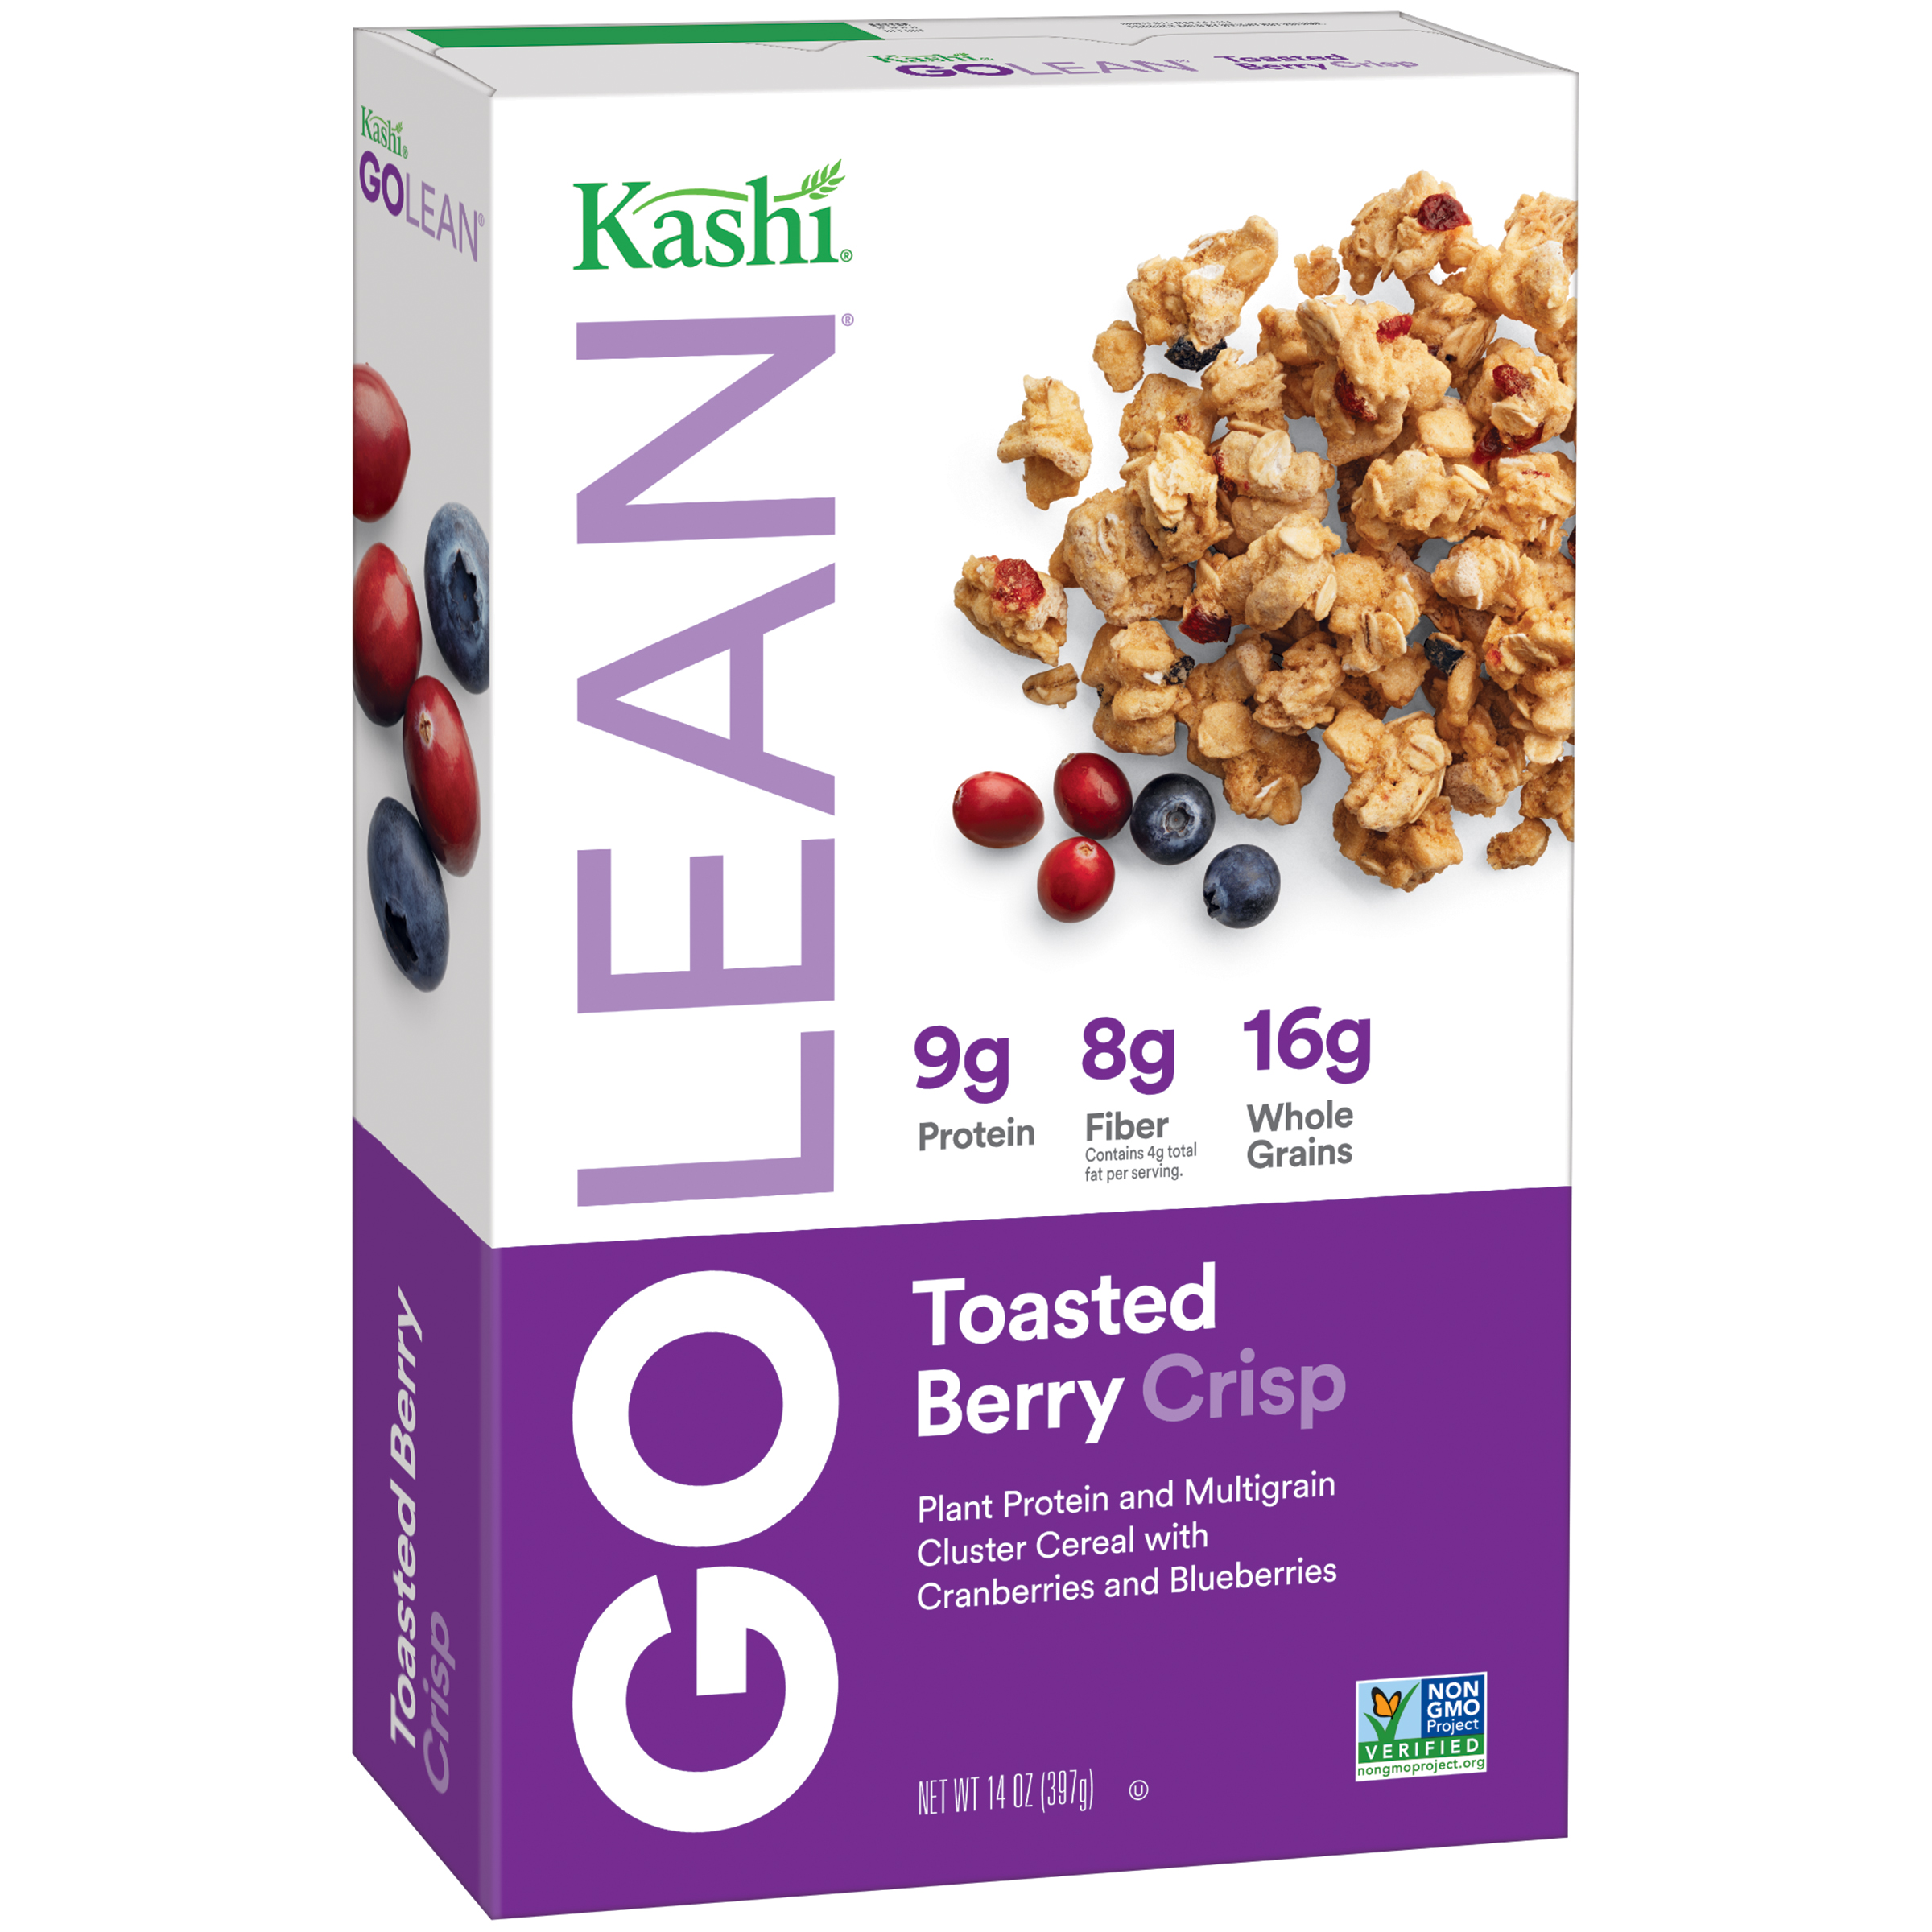 Kashi® GOLEAN Crisp!® Toasted Berry Crumble Cereal 14 oz. Box